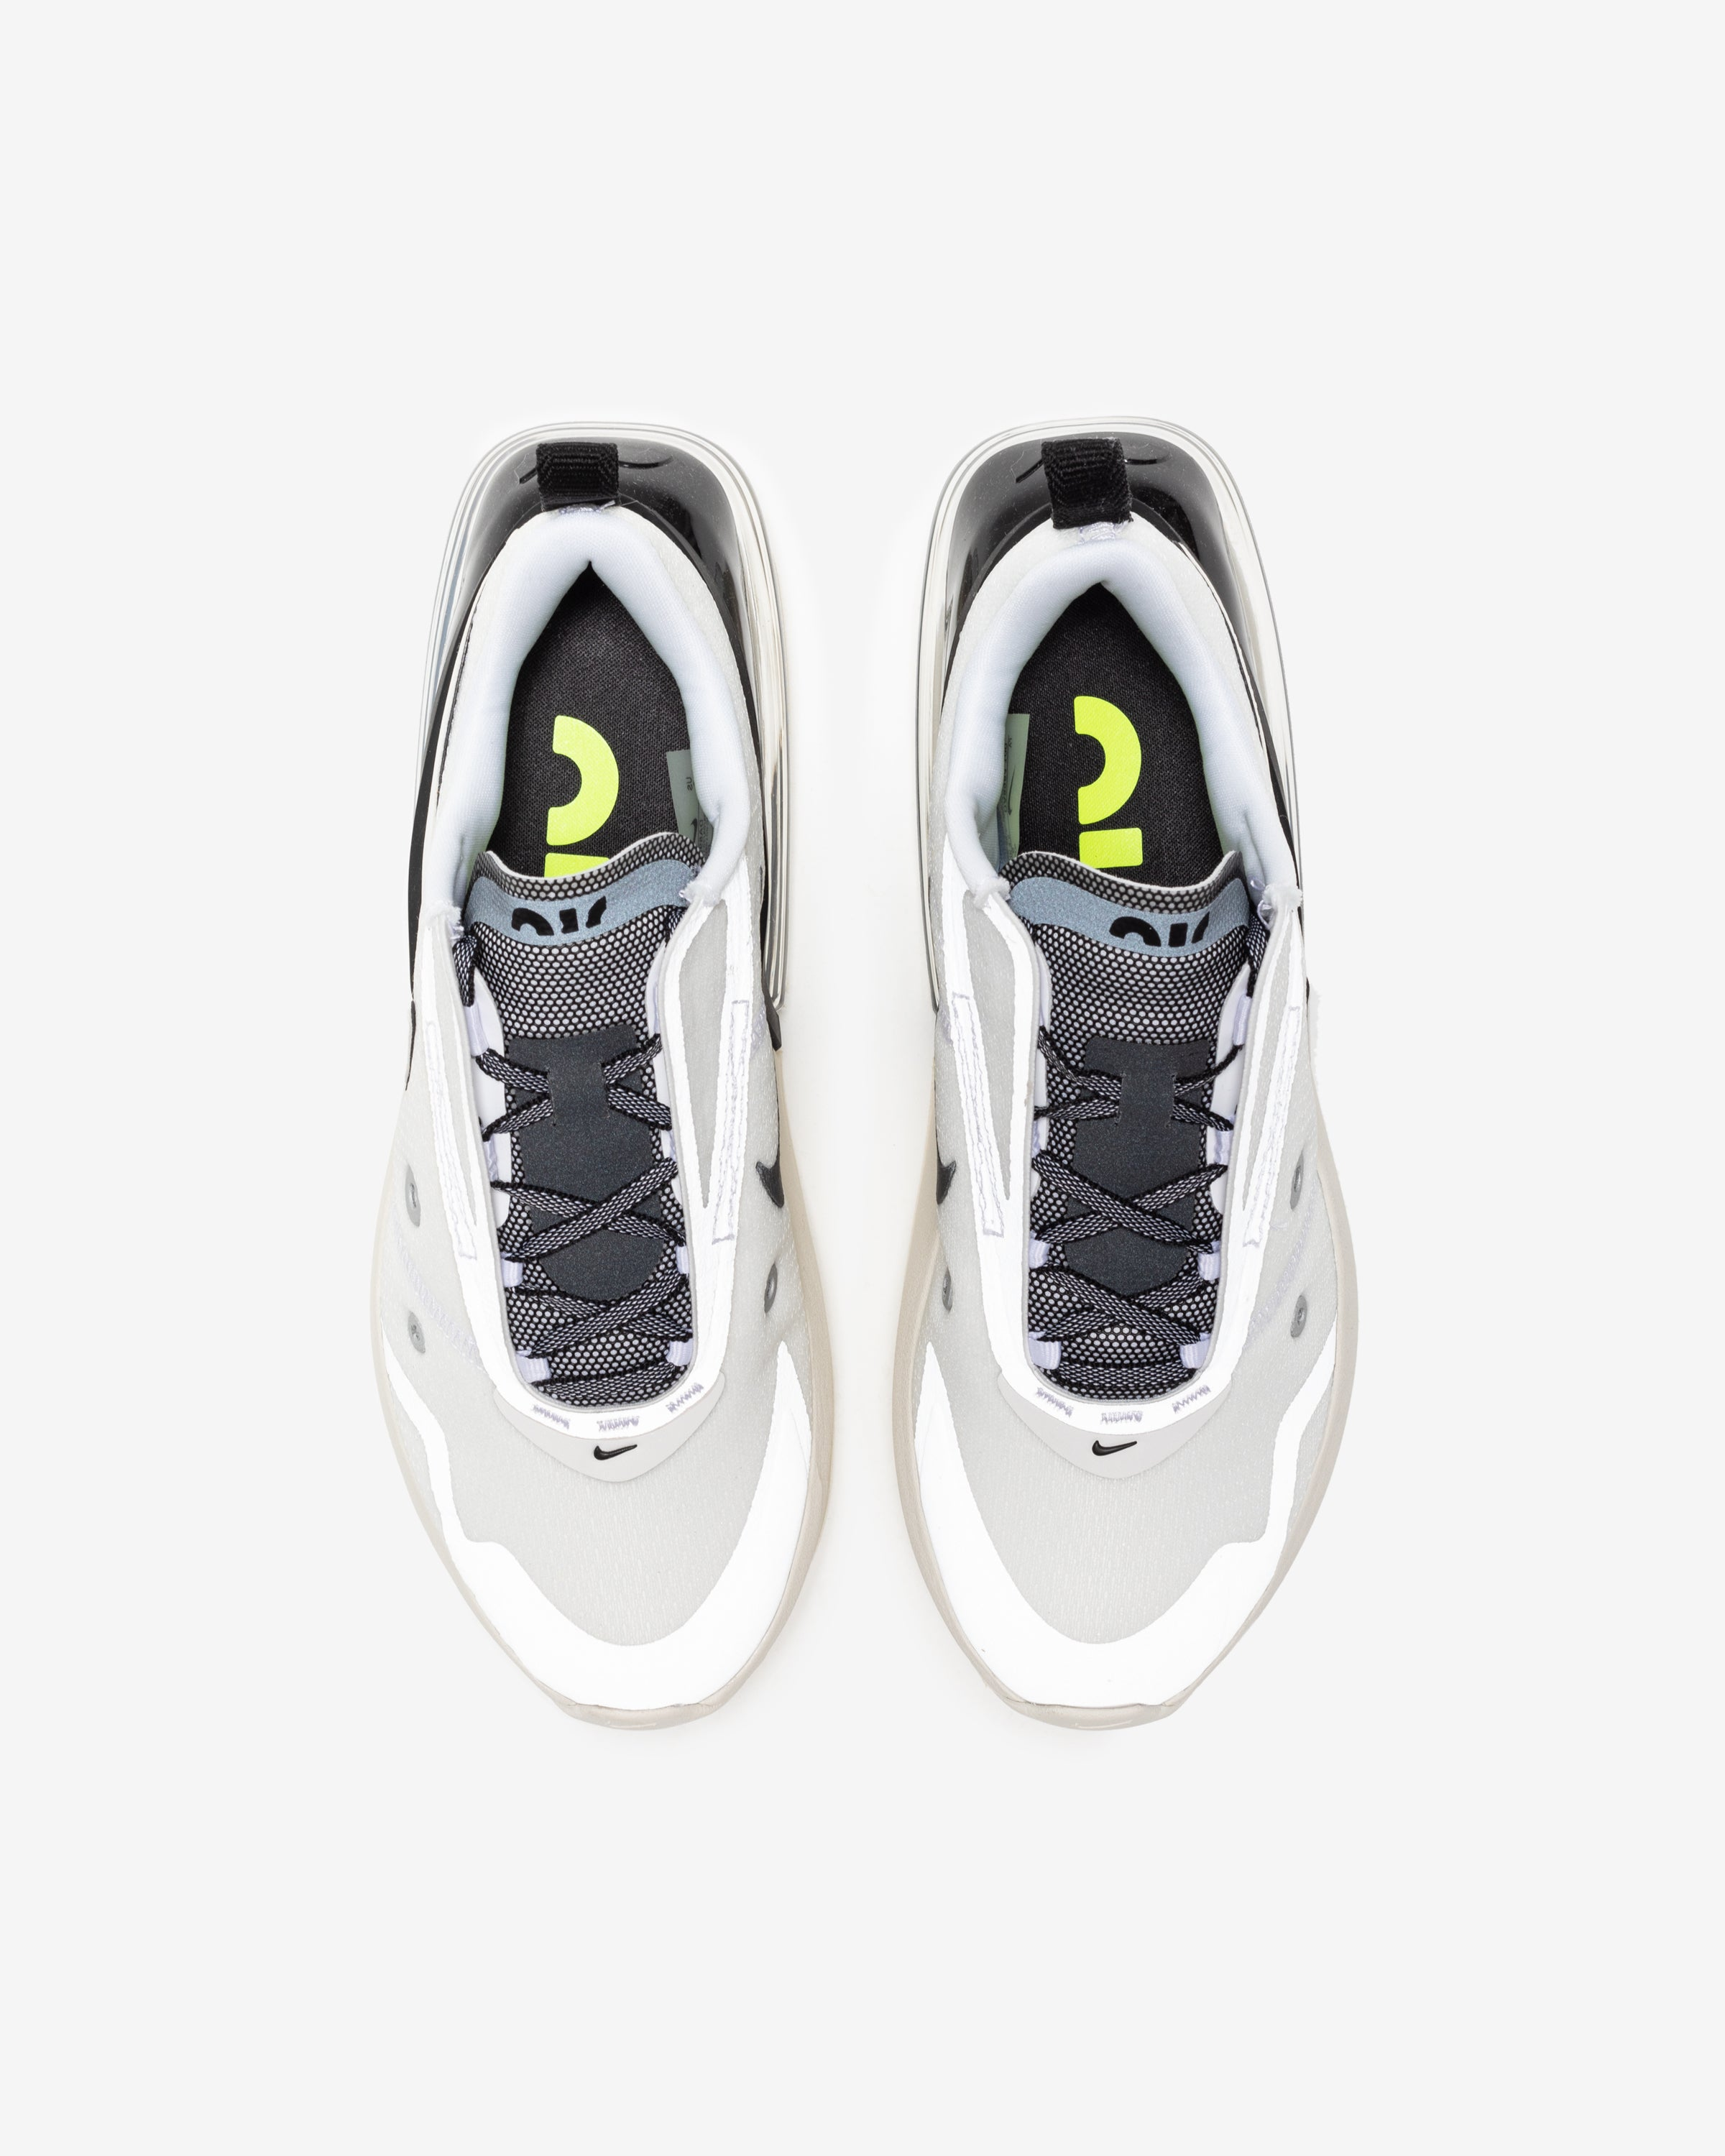 WOMEN'S AIR MAX UP QS - WHITE/ SAIL/ PALEIVORY/ GUMMEDBROWN